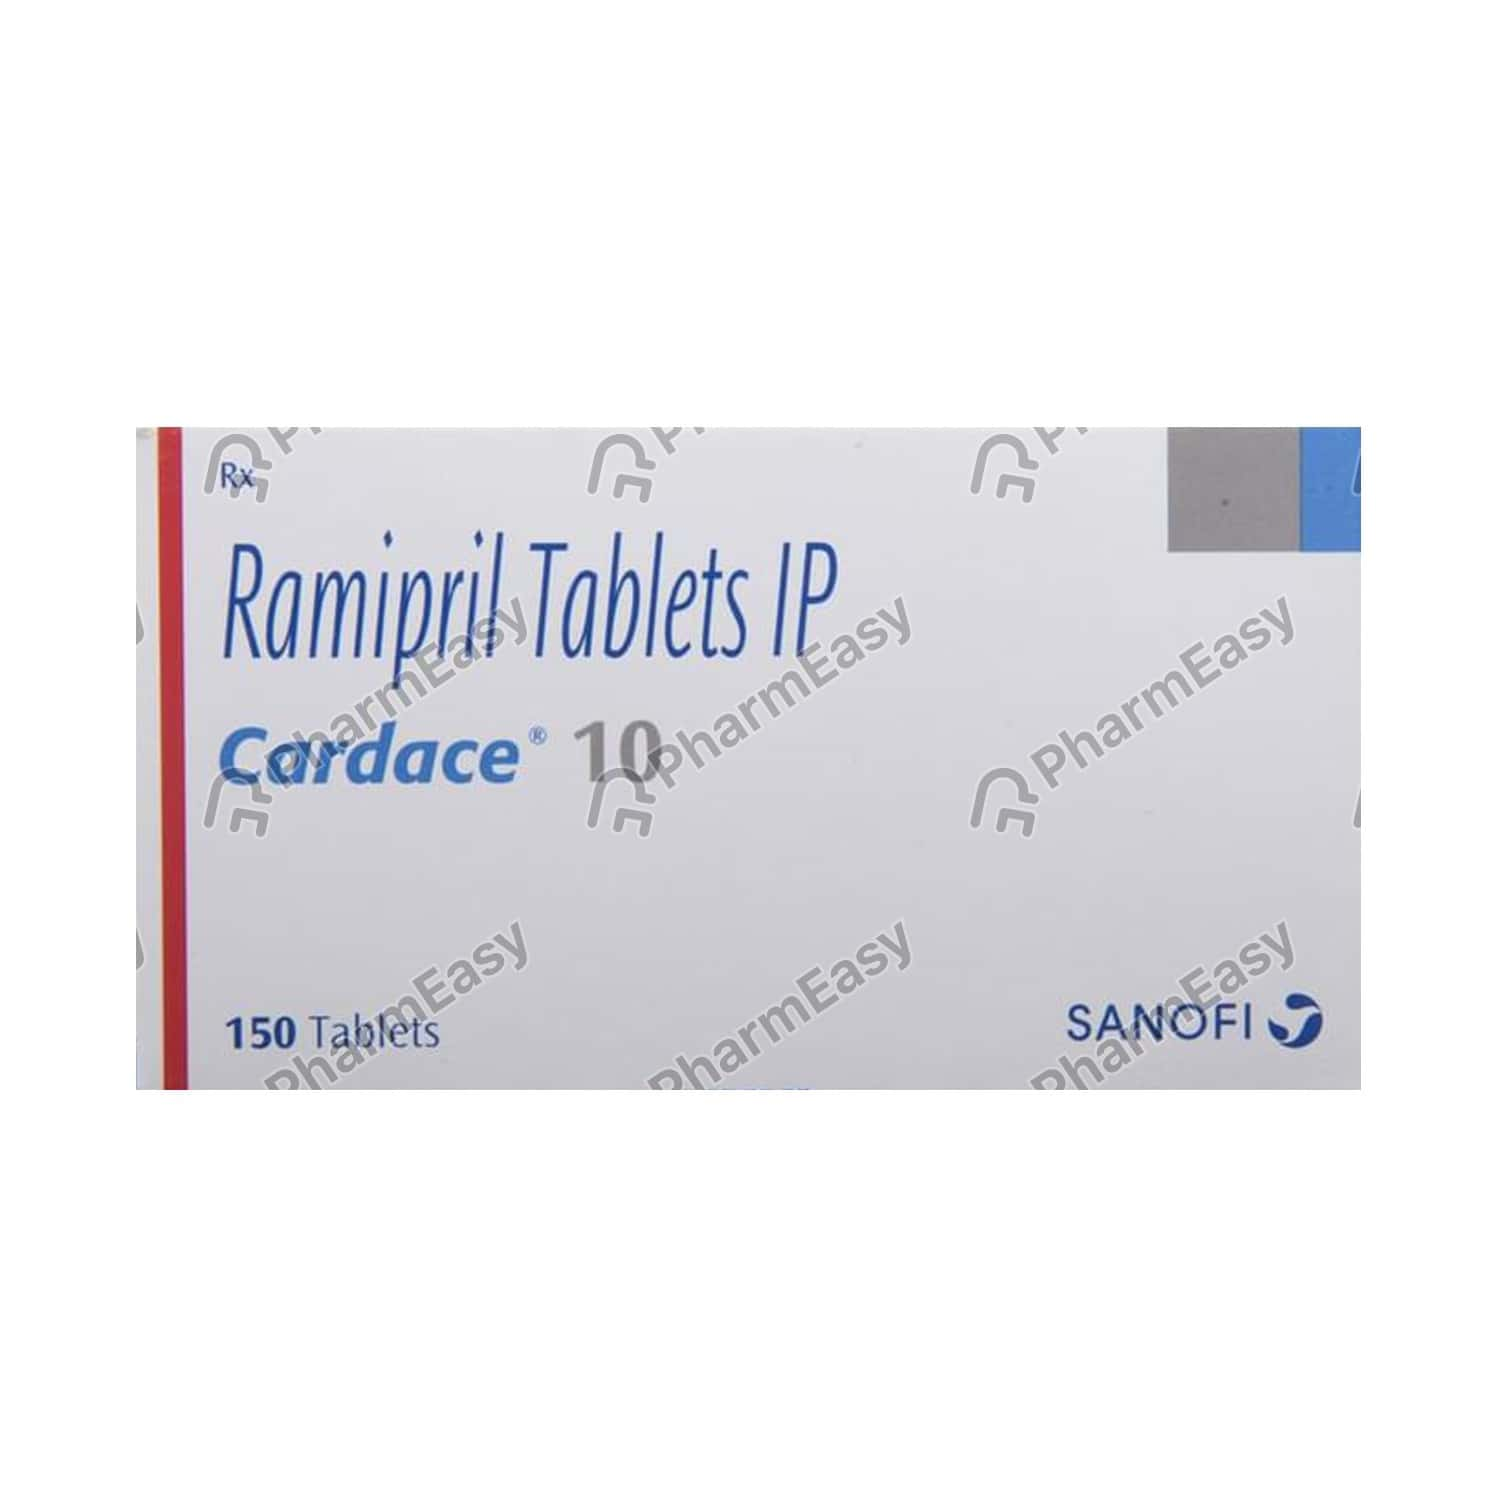 Cardace 10mg Tablet